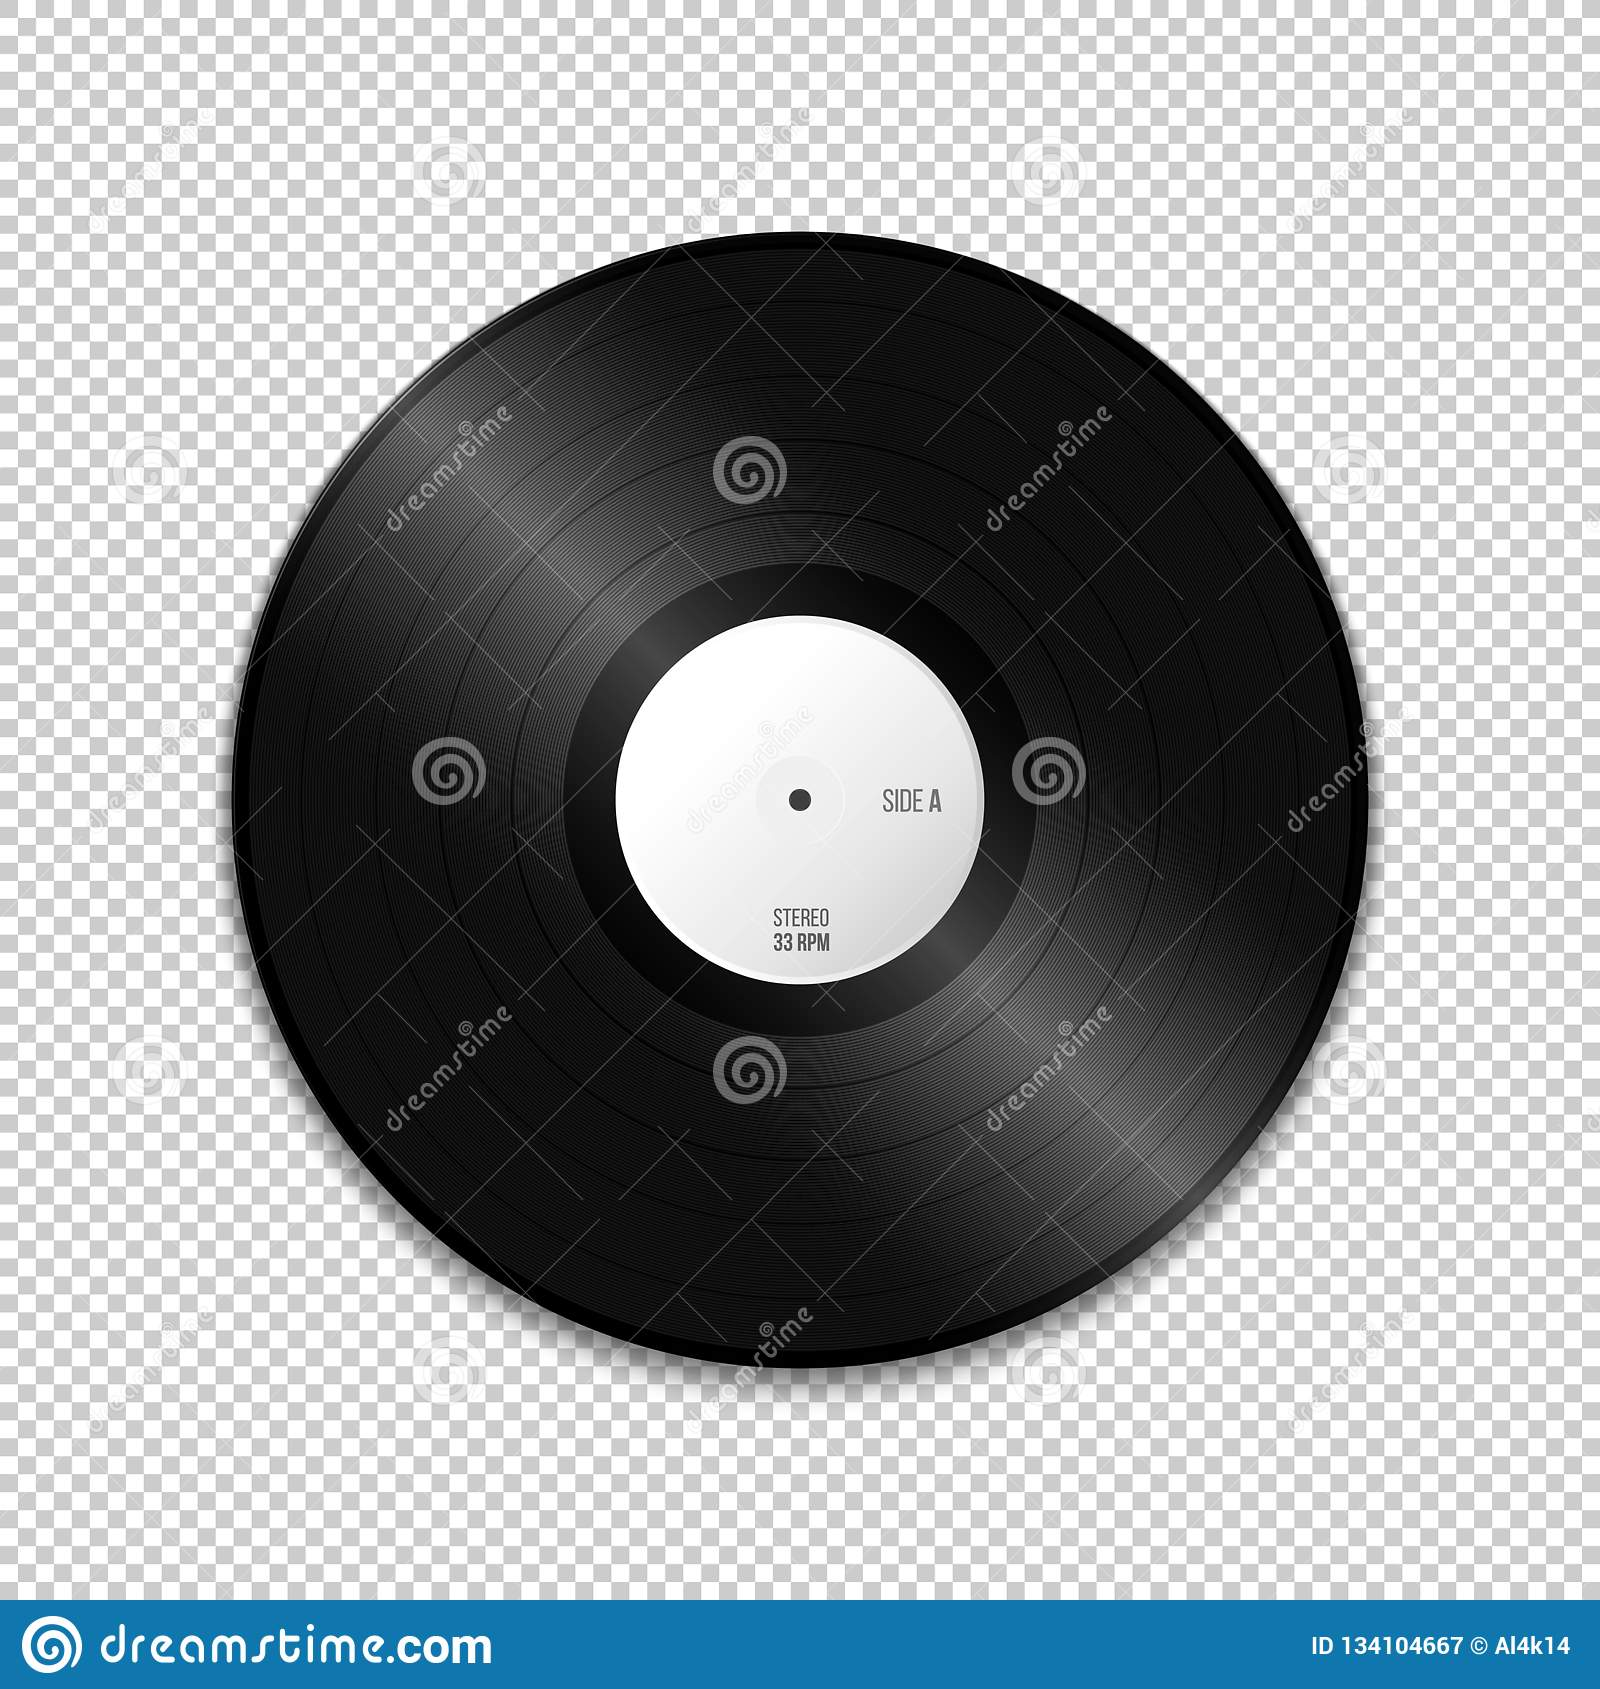 vector blank vinyl record mockup stock vector illustration of acoustic disk 134104667 https www dreamstime com vector white paper label lp vinyl record blank mock up realistic illustration shadow template design isolated transparent image134104667